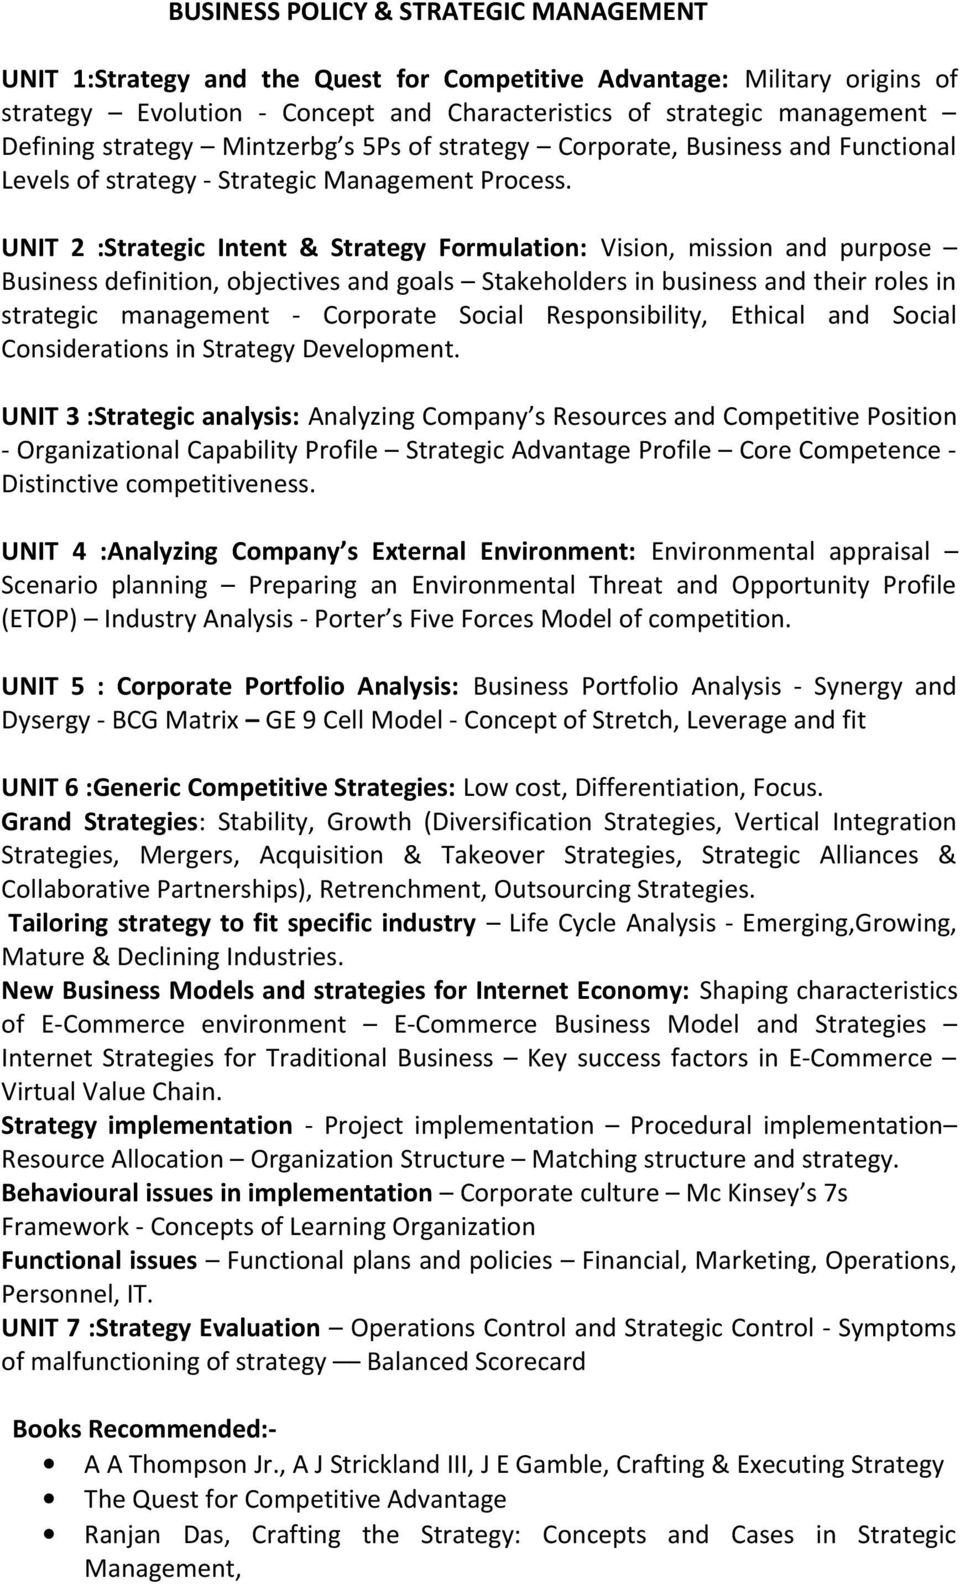 UNIT 2 :Strategic Intent & Strategy Formulation: Vision, mission and purpose Business definition, objectives and goals Stakeholders in business and their roles in strategic management - Corporate